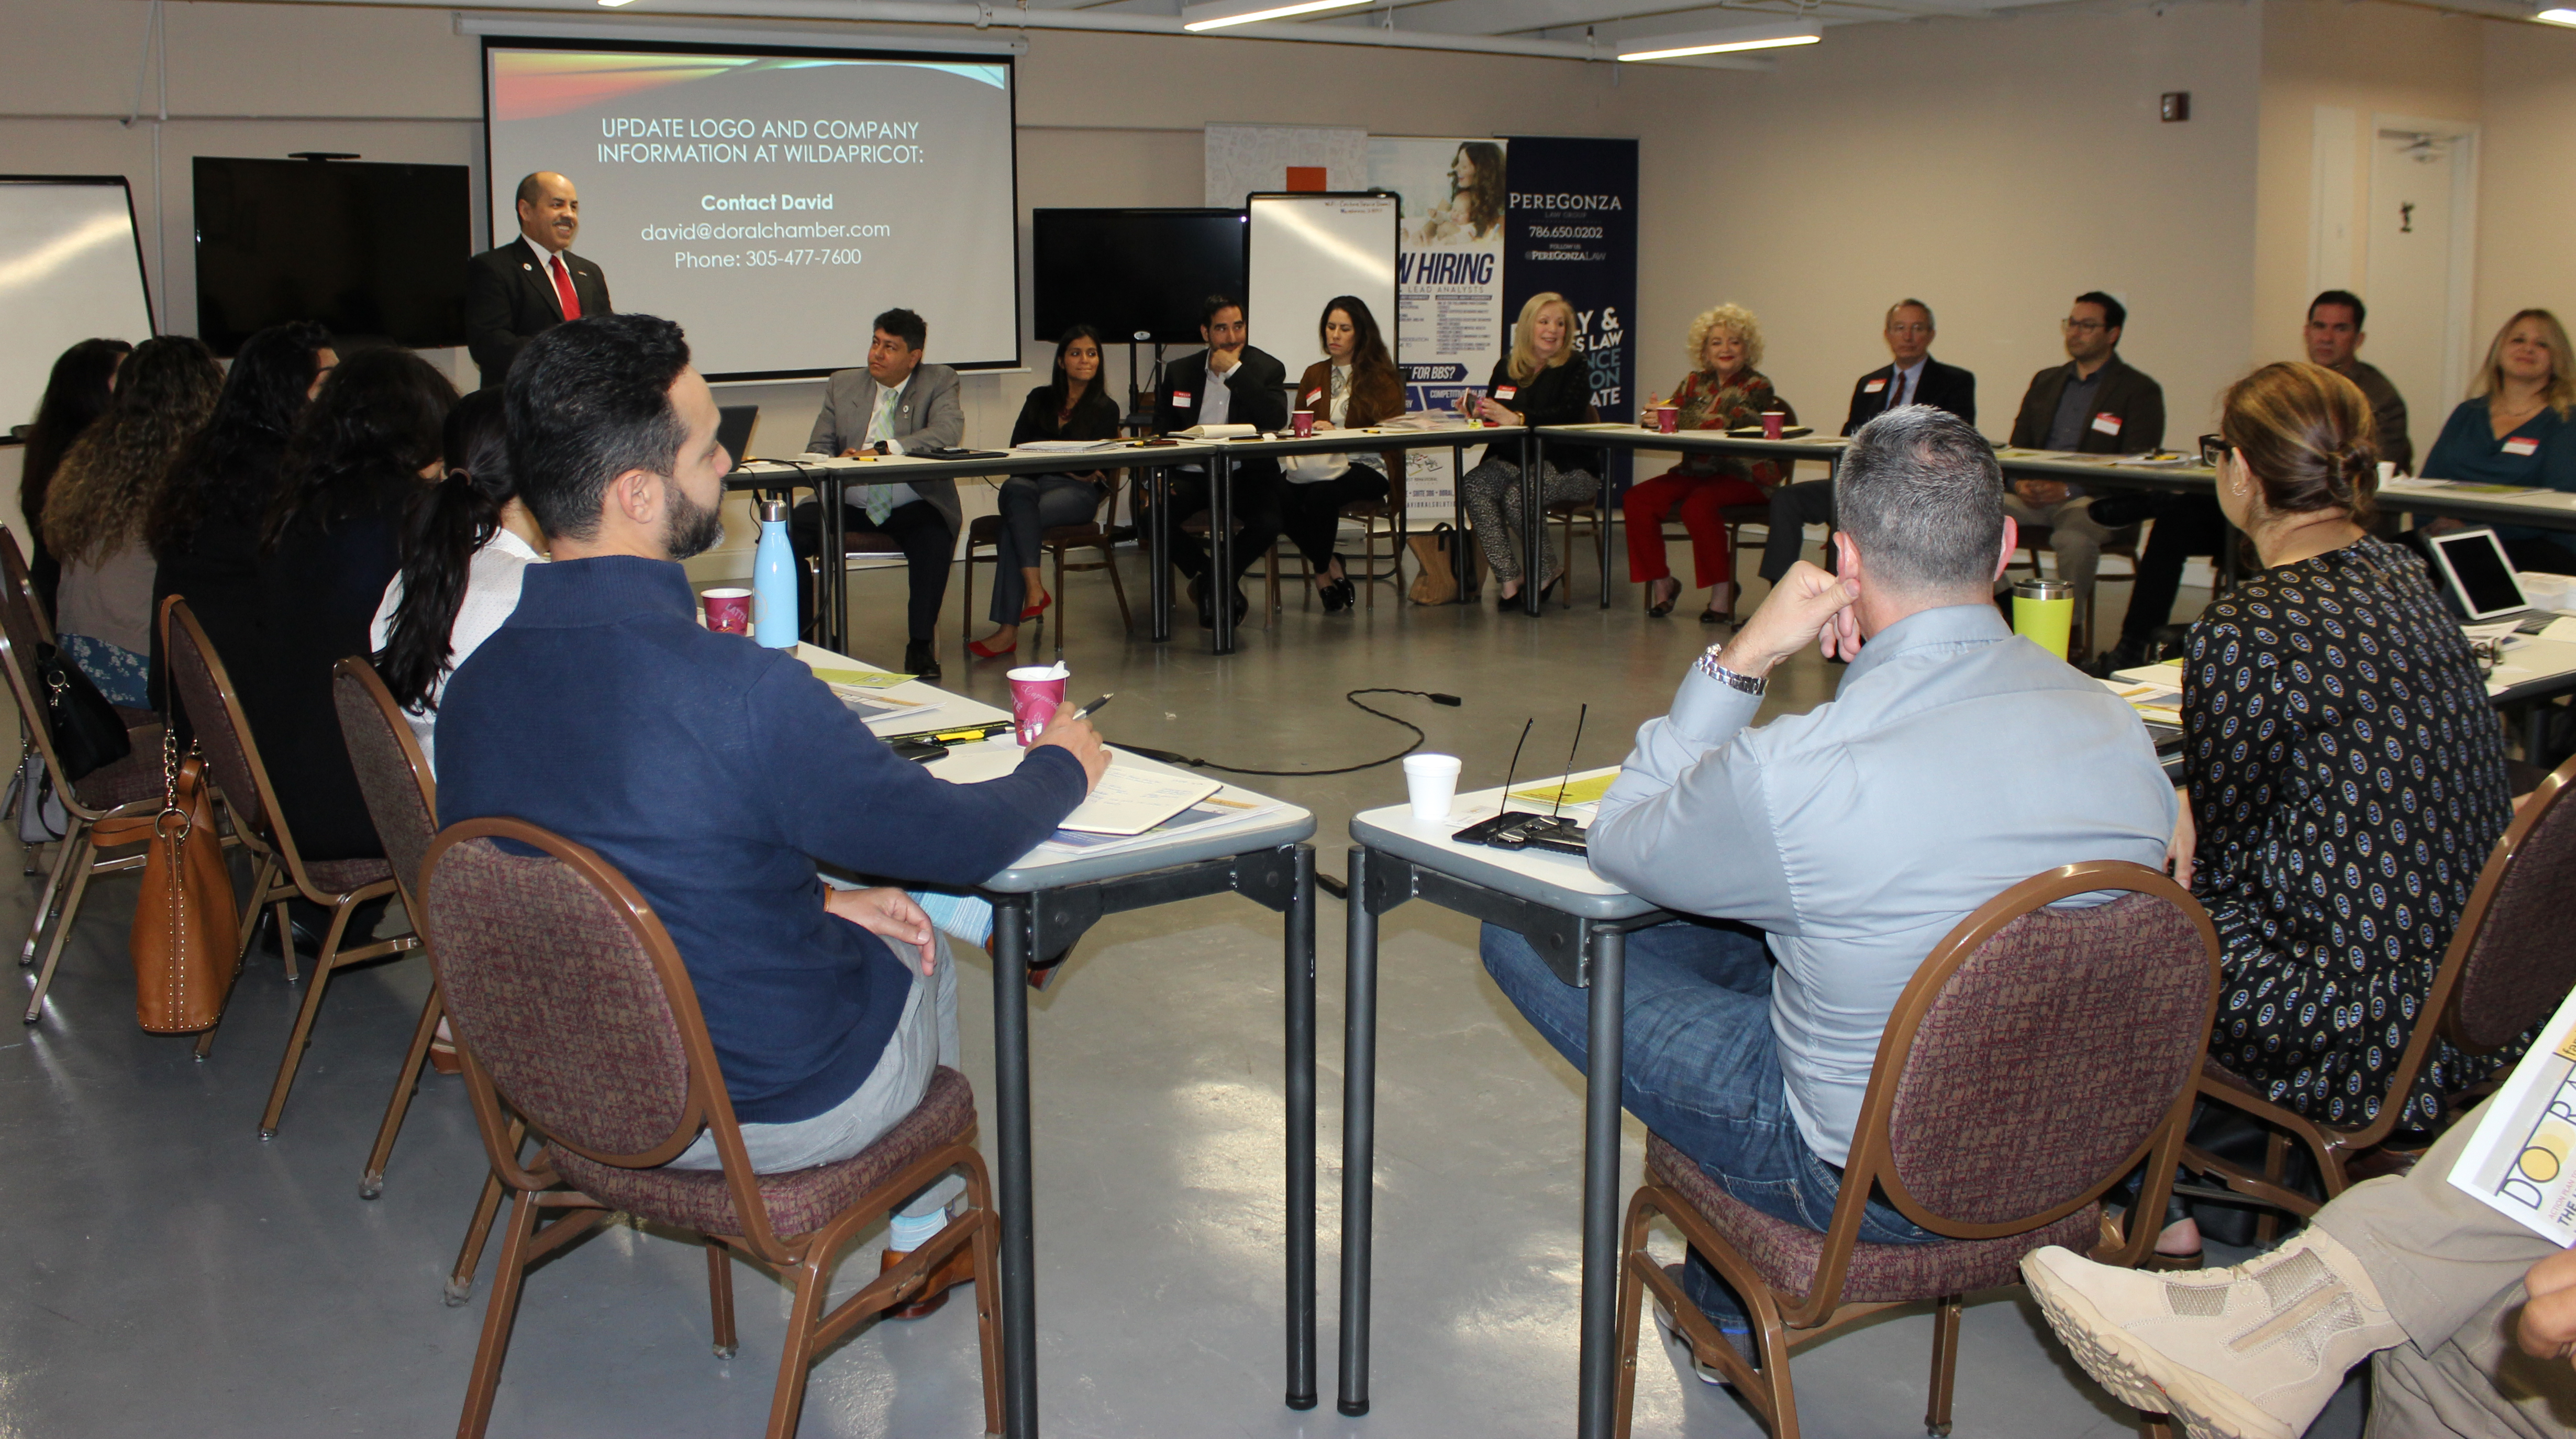 Doral Chamber of Commerce introduces Circle of Success event, everyone meeting and listening.